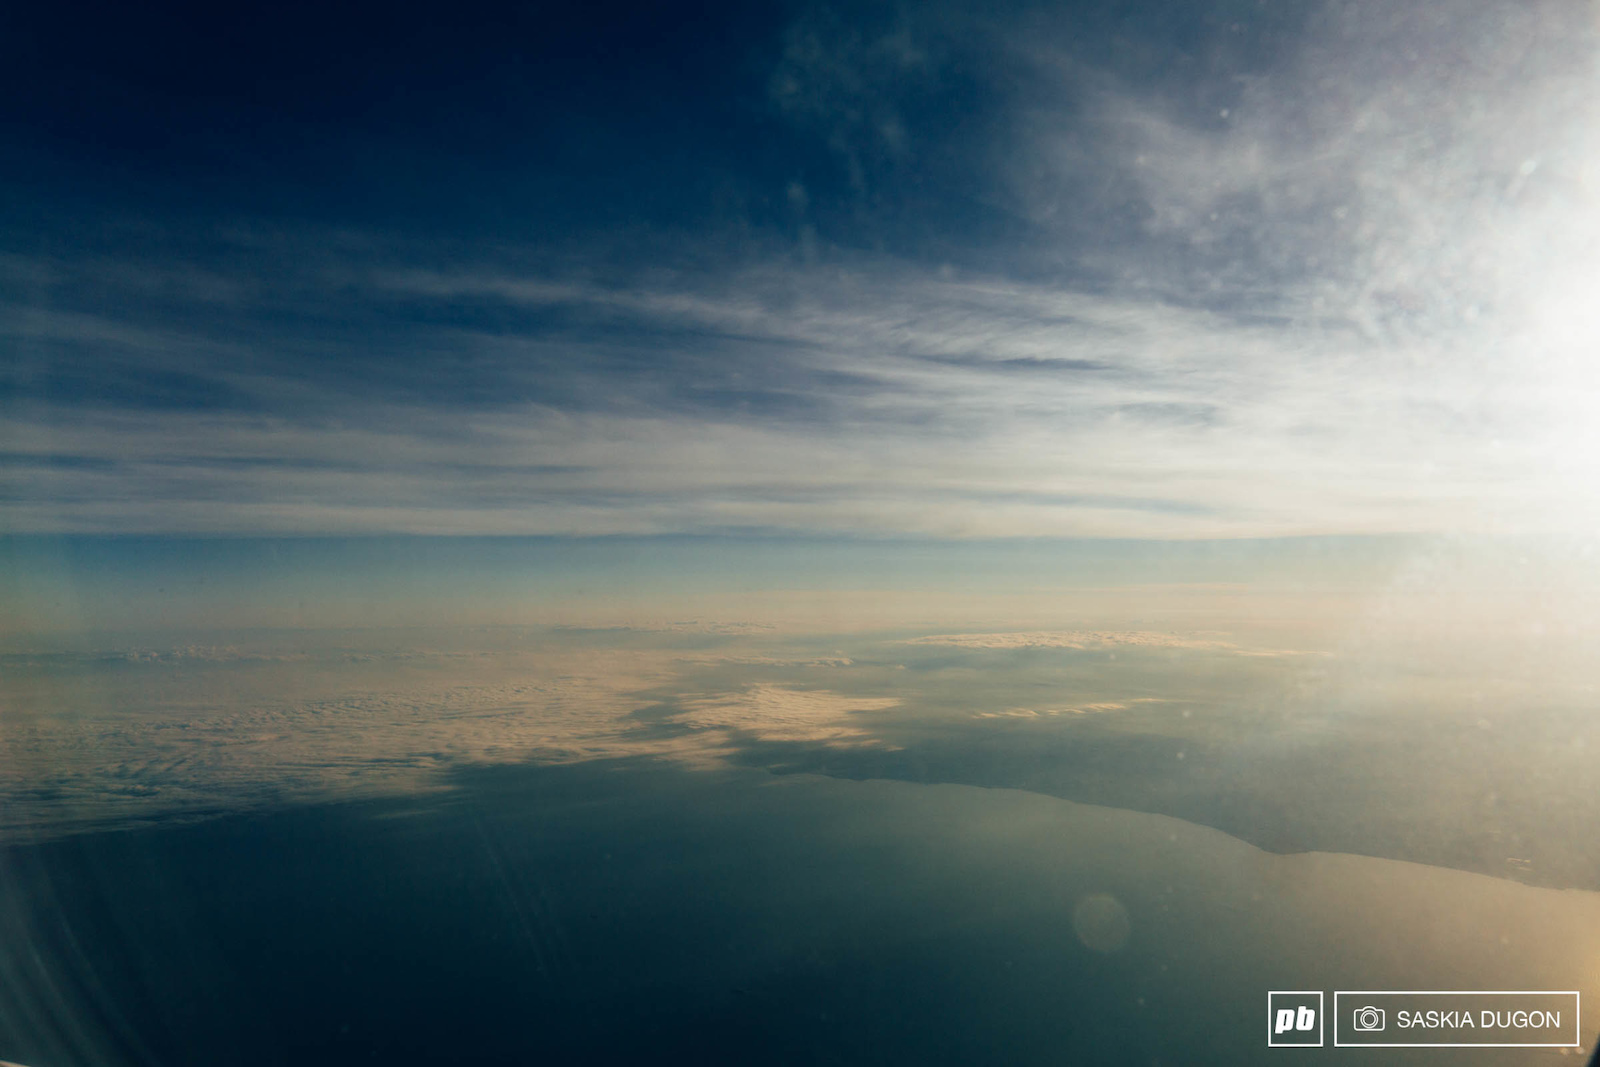 A peak out of the plane window showed the gorgeous coastline of southern Ireland.